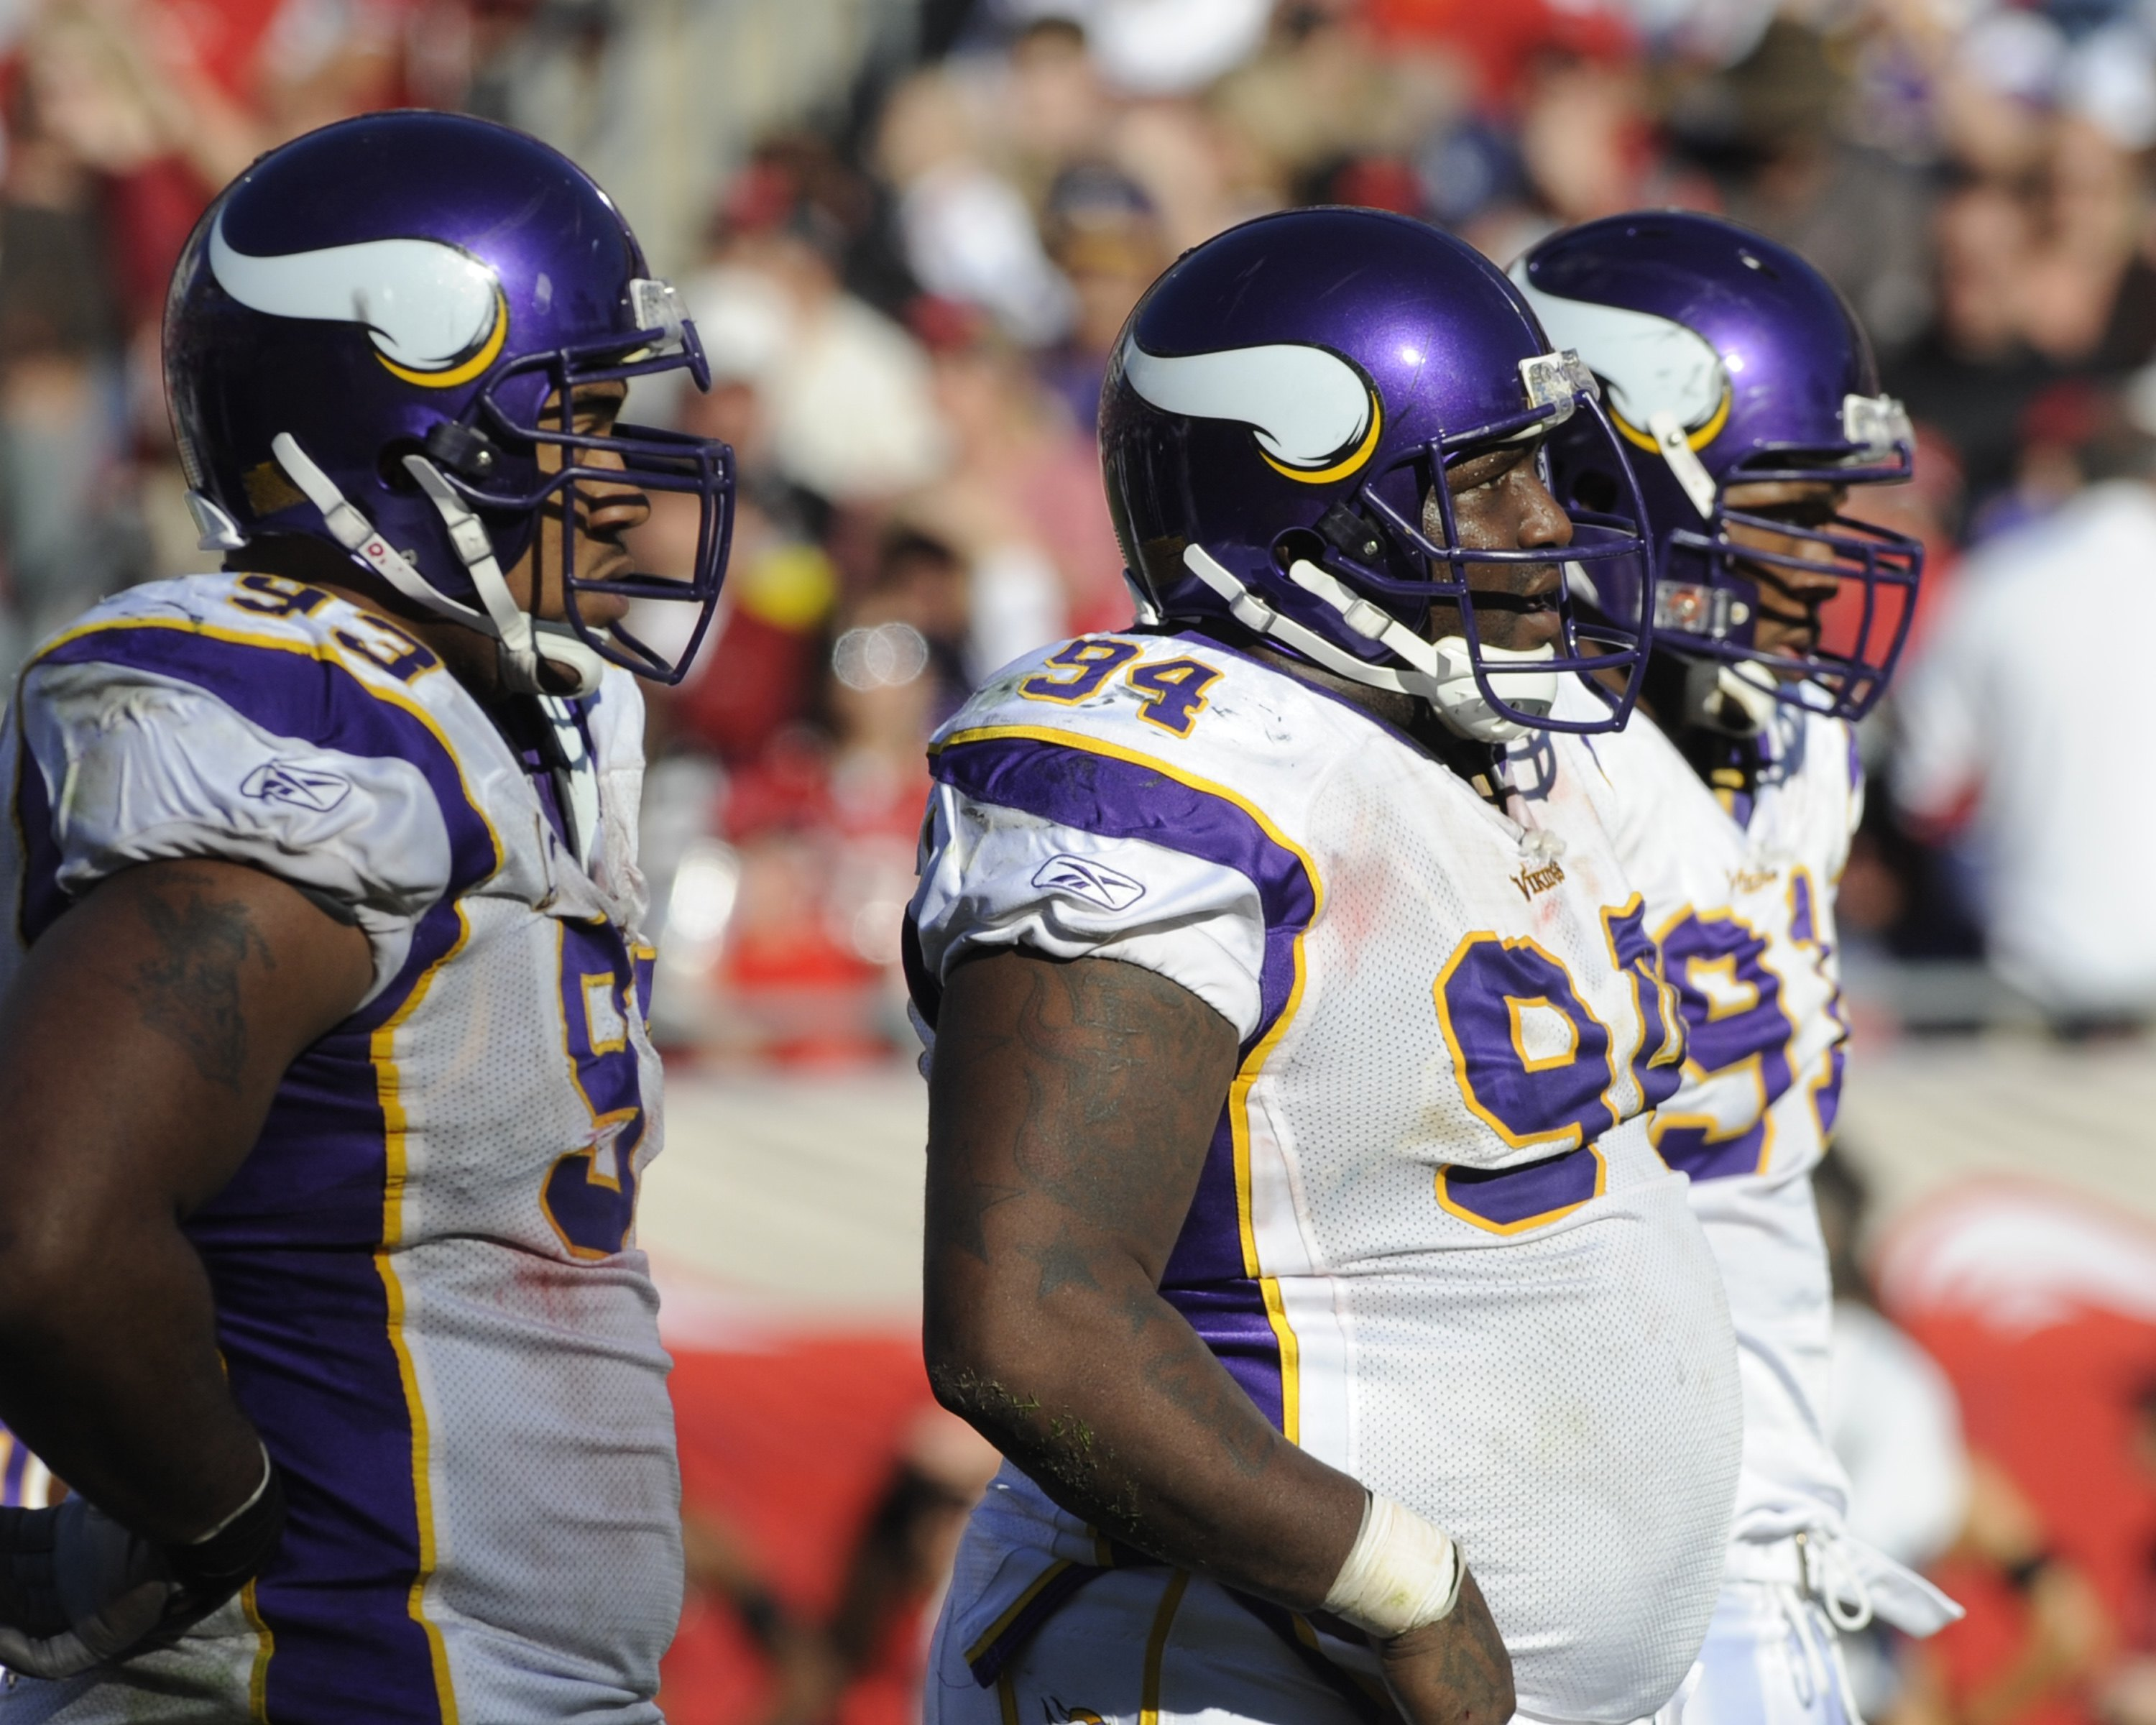 TAMPA, FL - NOVEMBER 16: Defensive tackle Pat Williams #94 of the Minnesota Vikings lines up for play against the Tampa Bay Buccaneers at Raymond James Stadium on November 16, 2008 in Tampa, Florida.  (Photo by Al Messerschmidt/Getty Images)